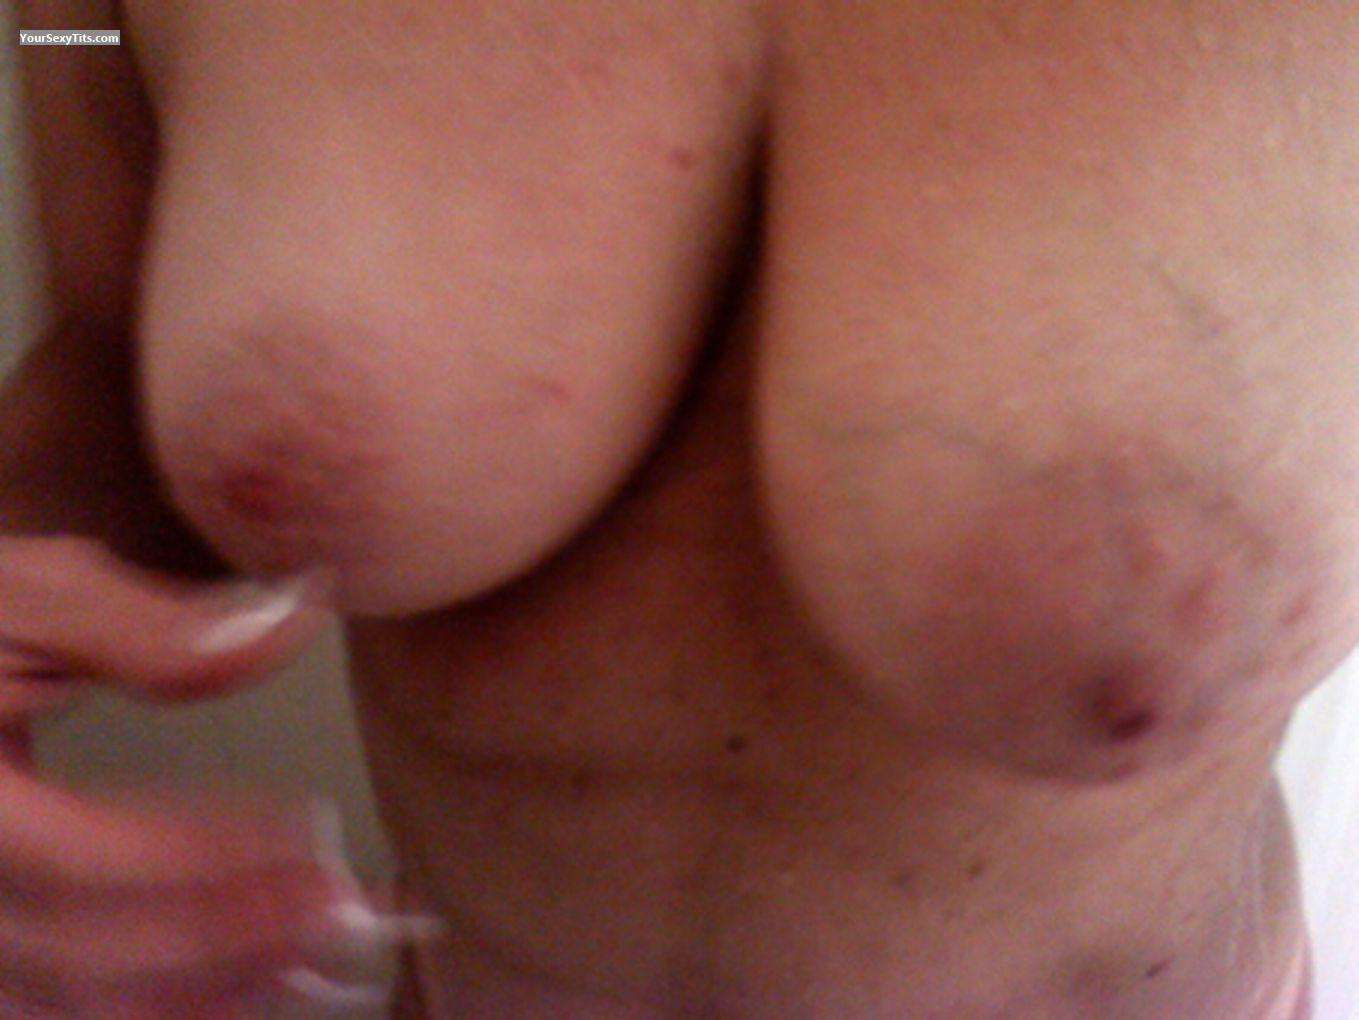 Tit Flash: Wife's Medium Tits - Boob from United States